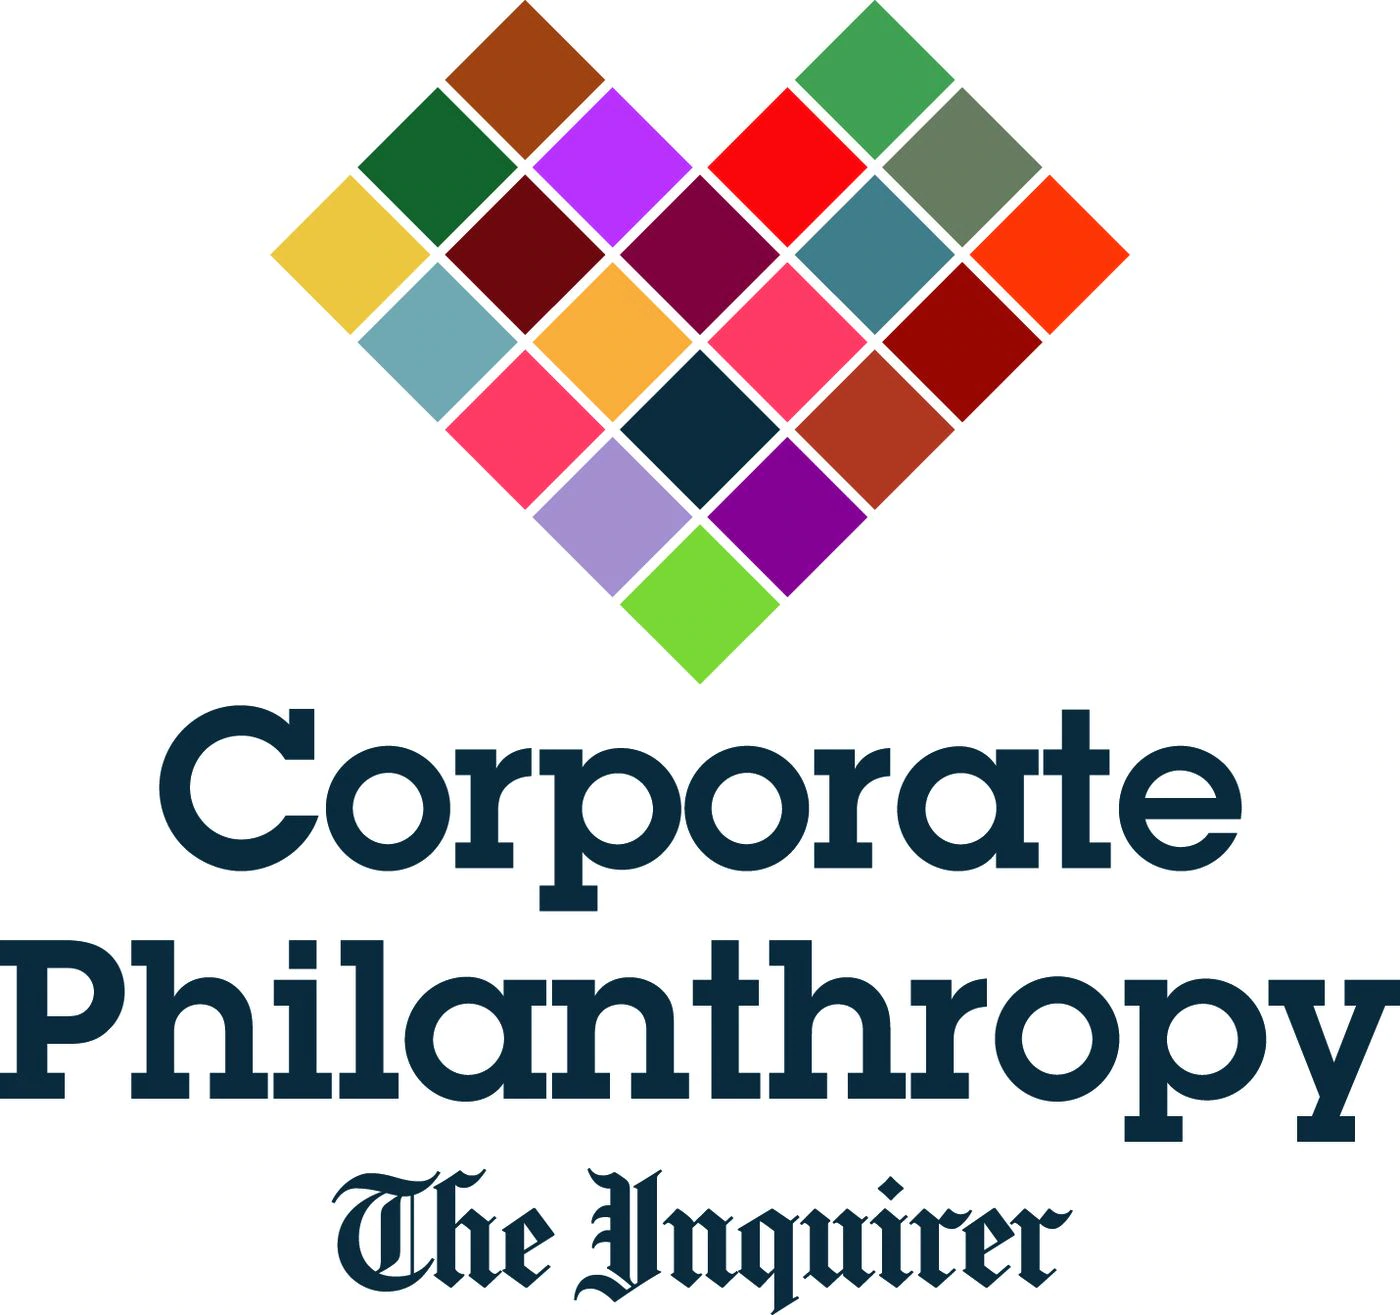 Corporate Philanthropy_The Inquirer